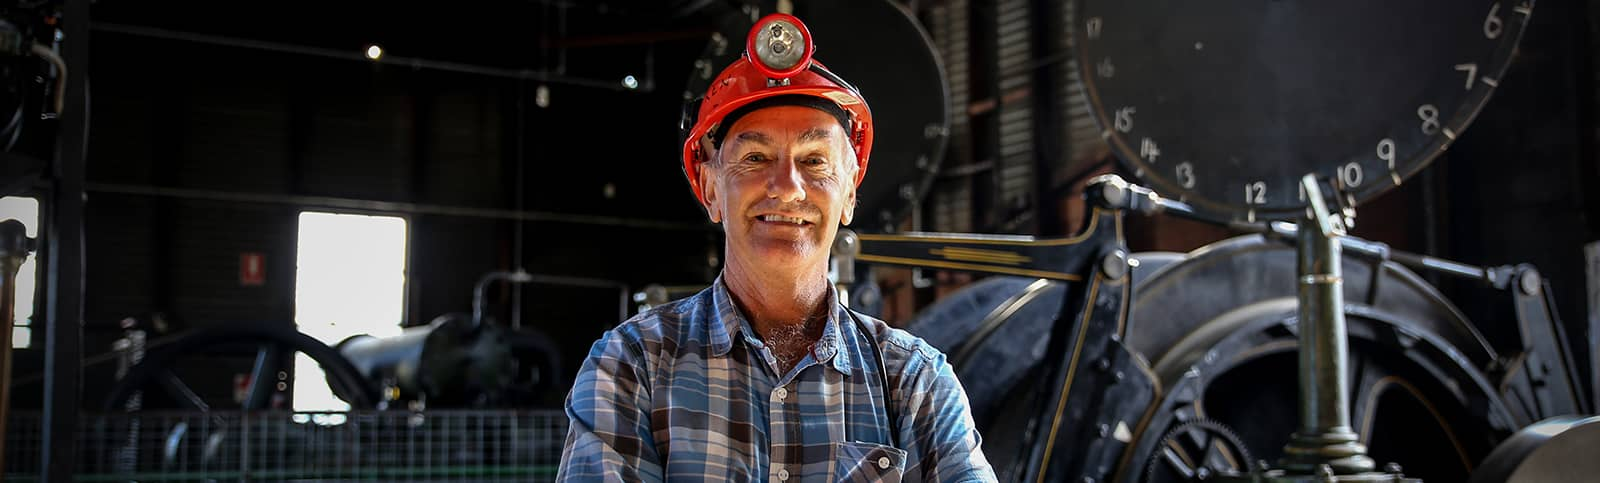 Central Deborah Gold Mine Tour Guide Ken standing in Engine Room with hard hat on